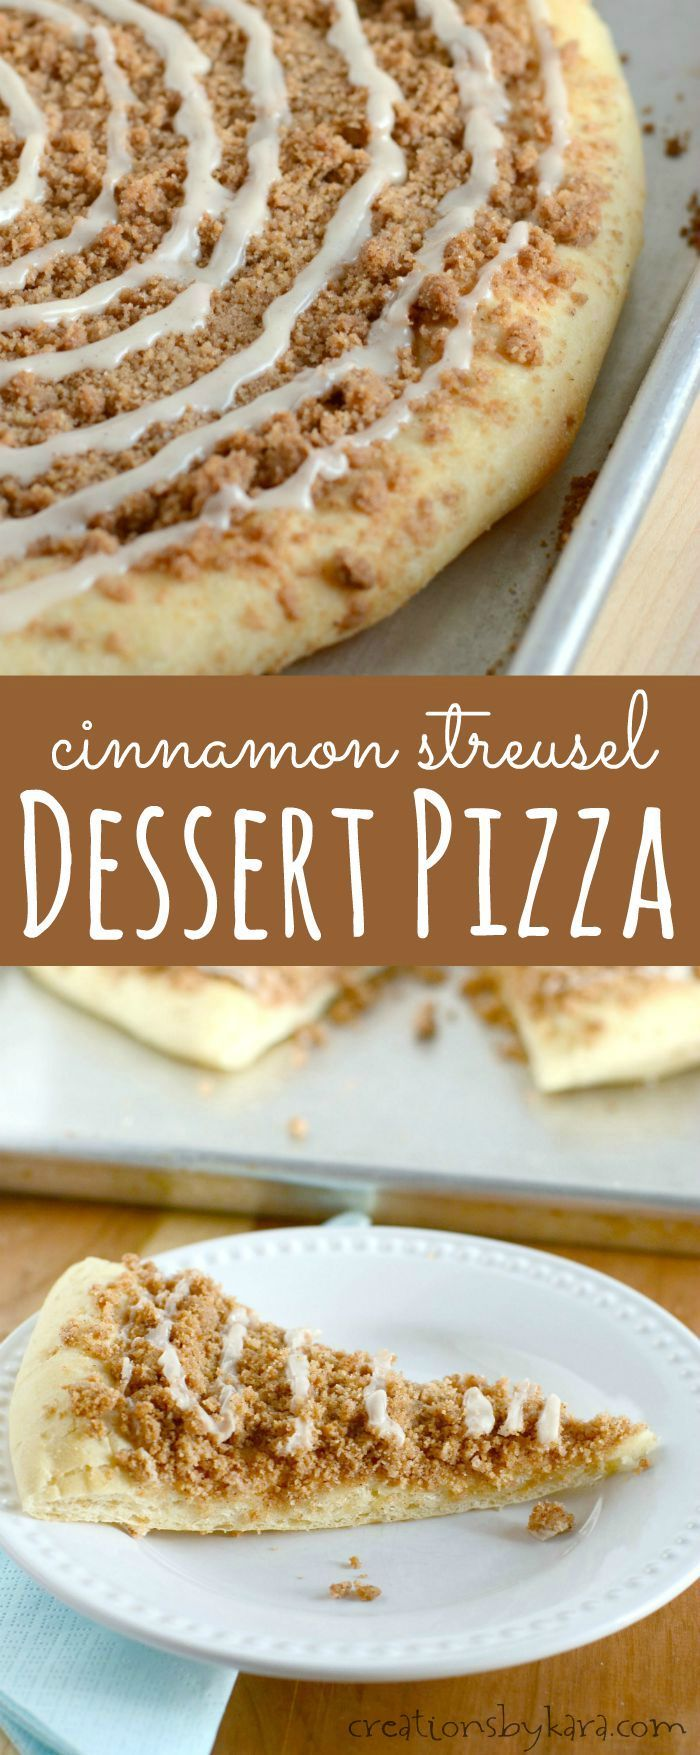 Homemade Cinnamon Crumb Dessert Pizza